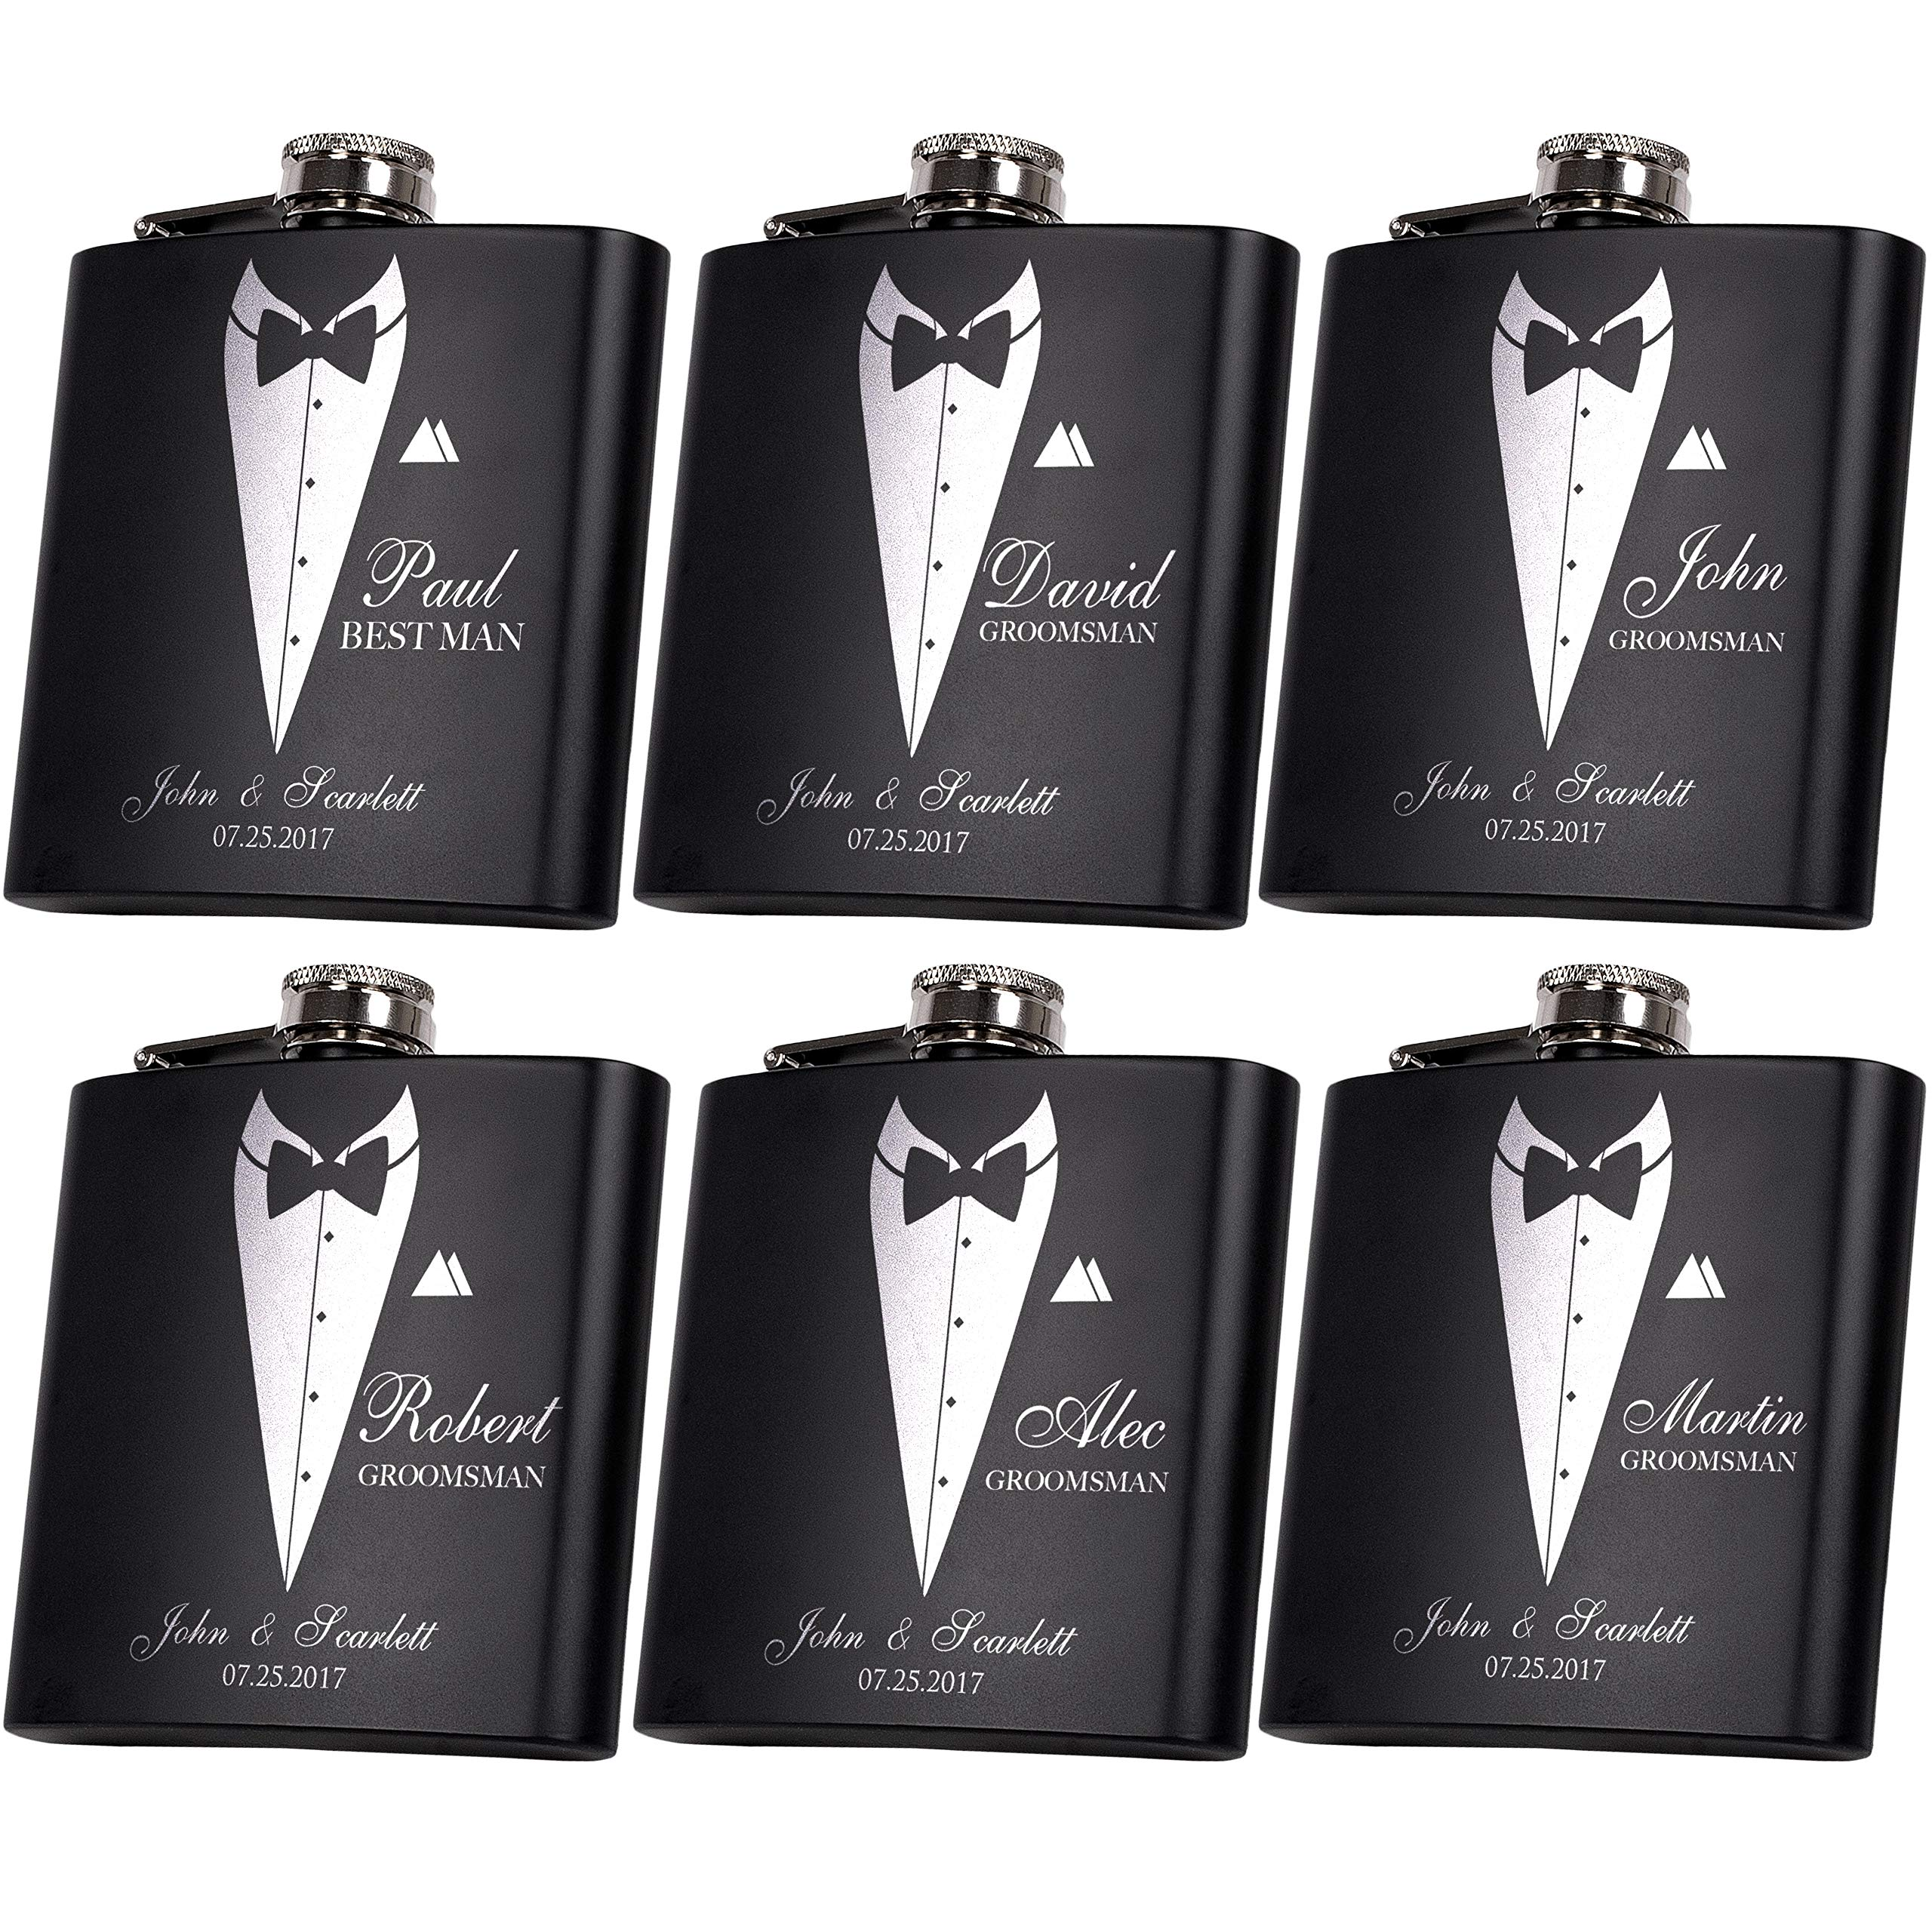 Set of 6, Set of 3, Single - Personalized Flask, Groomsmen Gift, Customized Groomsman Flasks, Wedding Favors, Matte Black ... (6) by United Craft Supplies